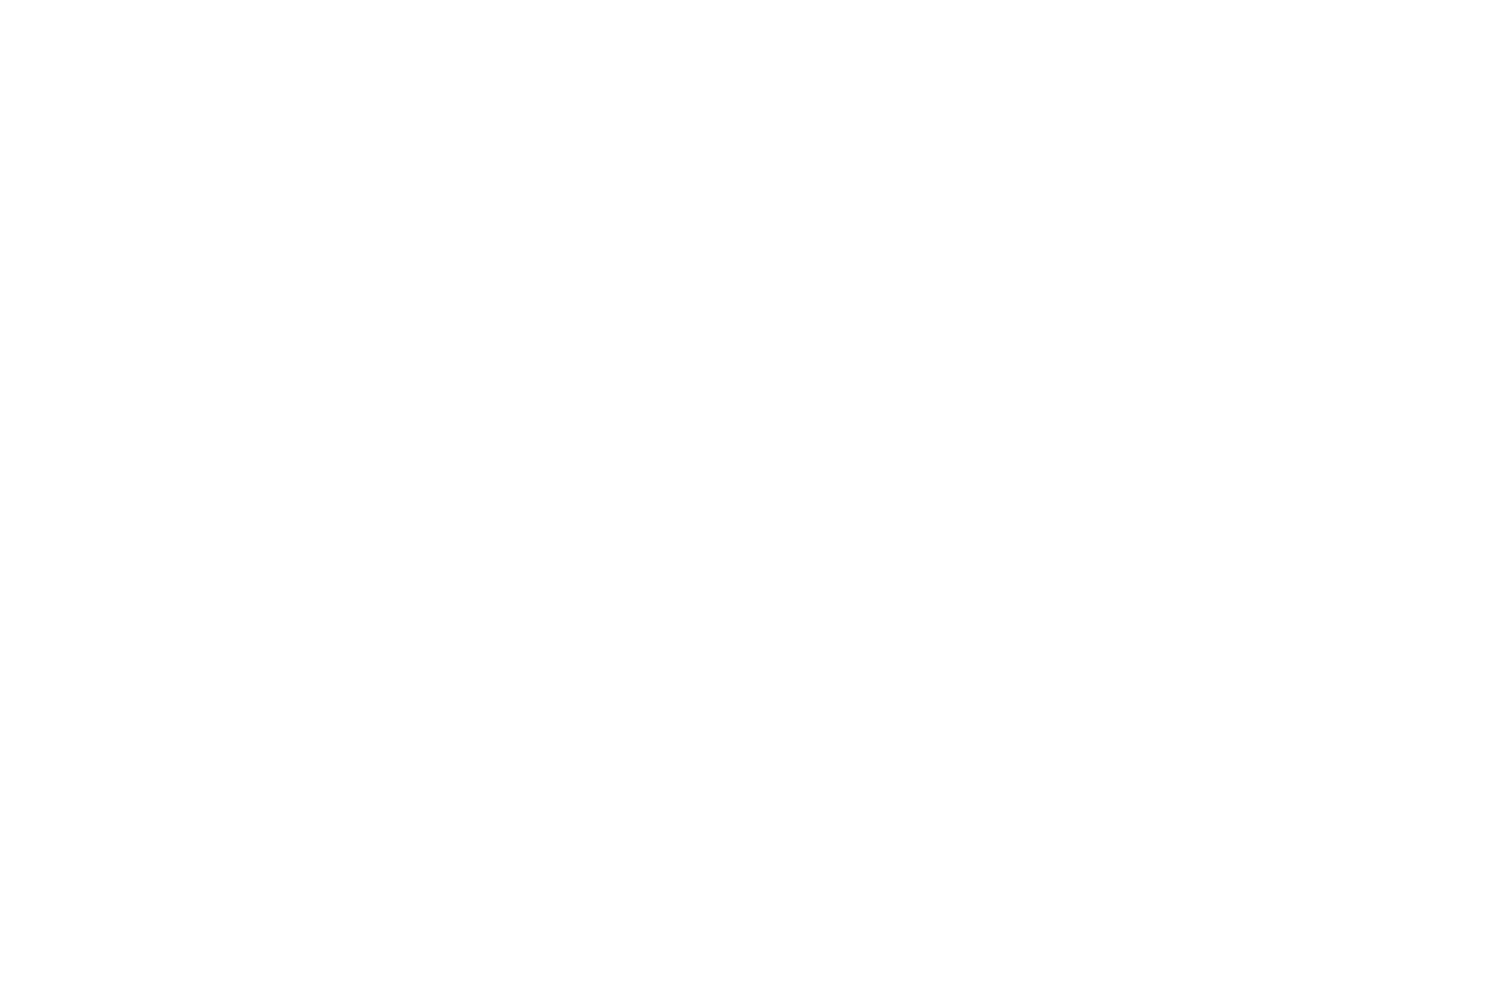 Diana Mah, Family Photographer